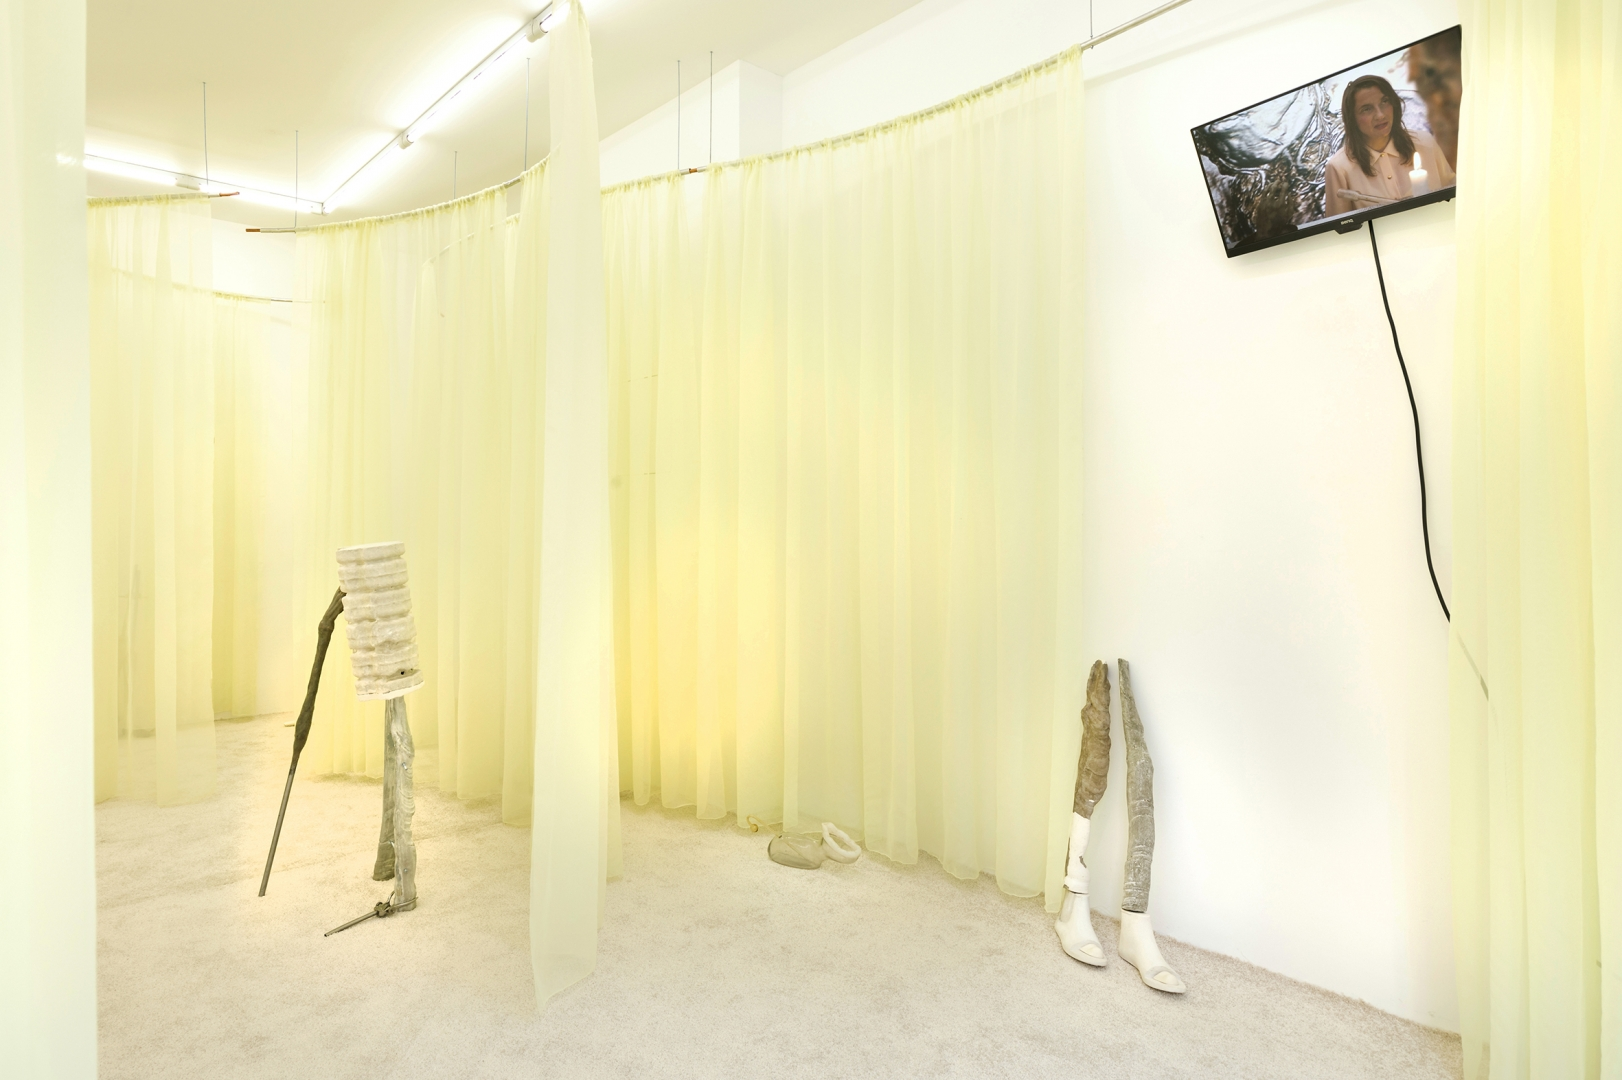 05 Youth Enhancement Systems, 2019 - Installation view at Galerie Valeria Cetraro, Paris